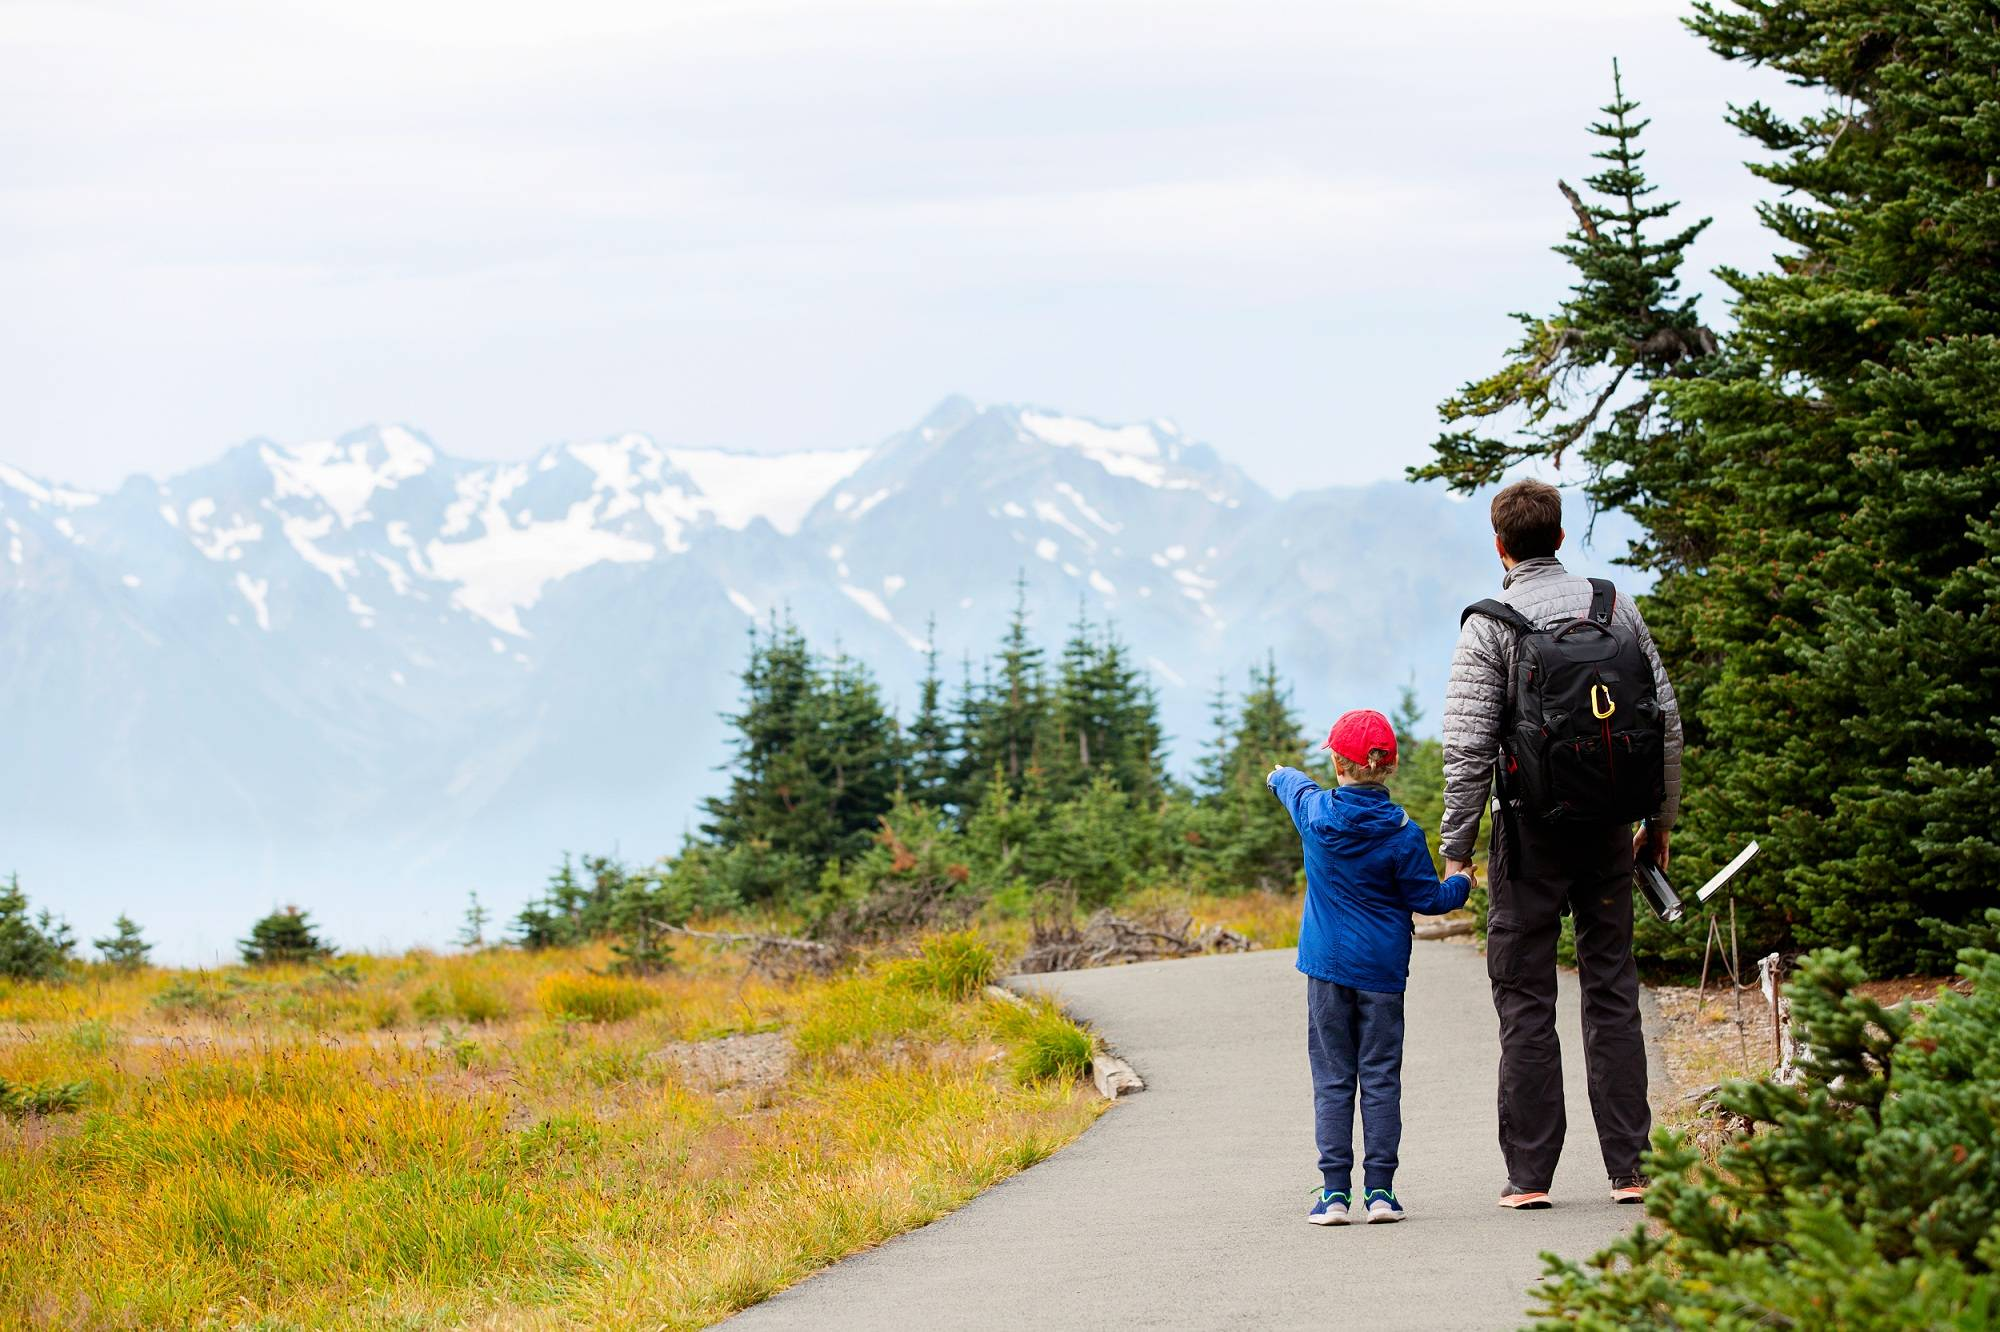 1-Day Excursion to Olympic National Park